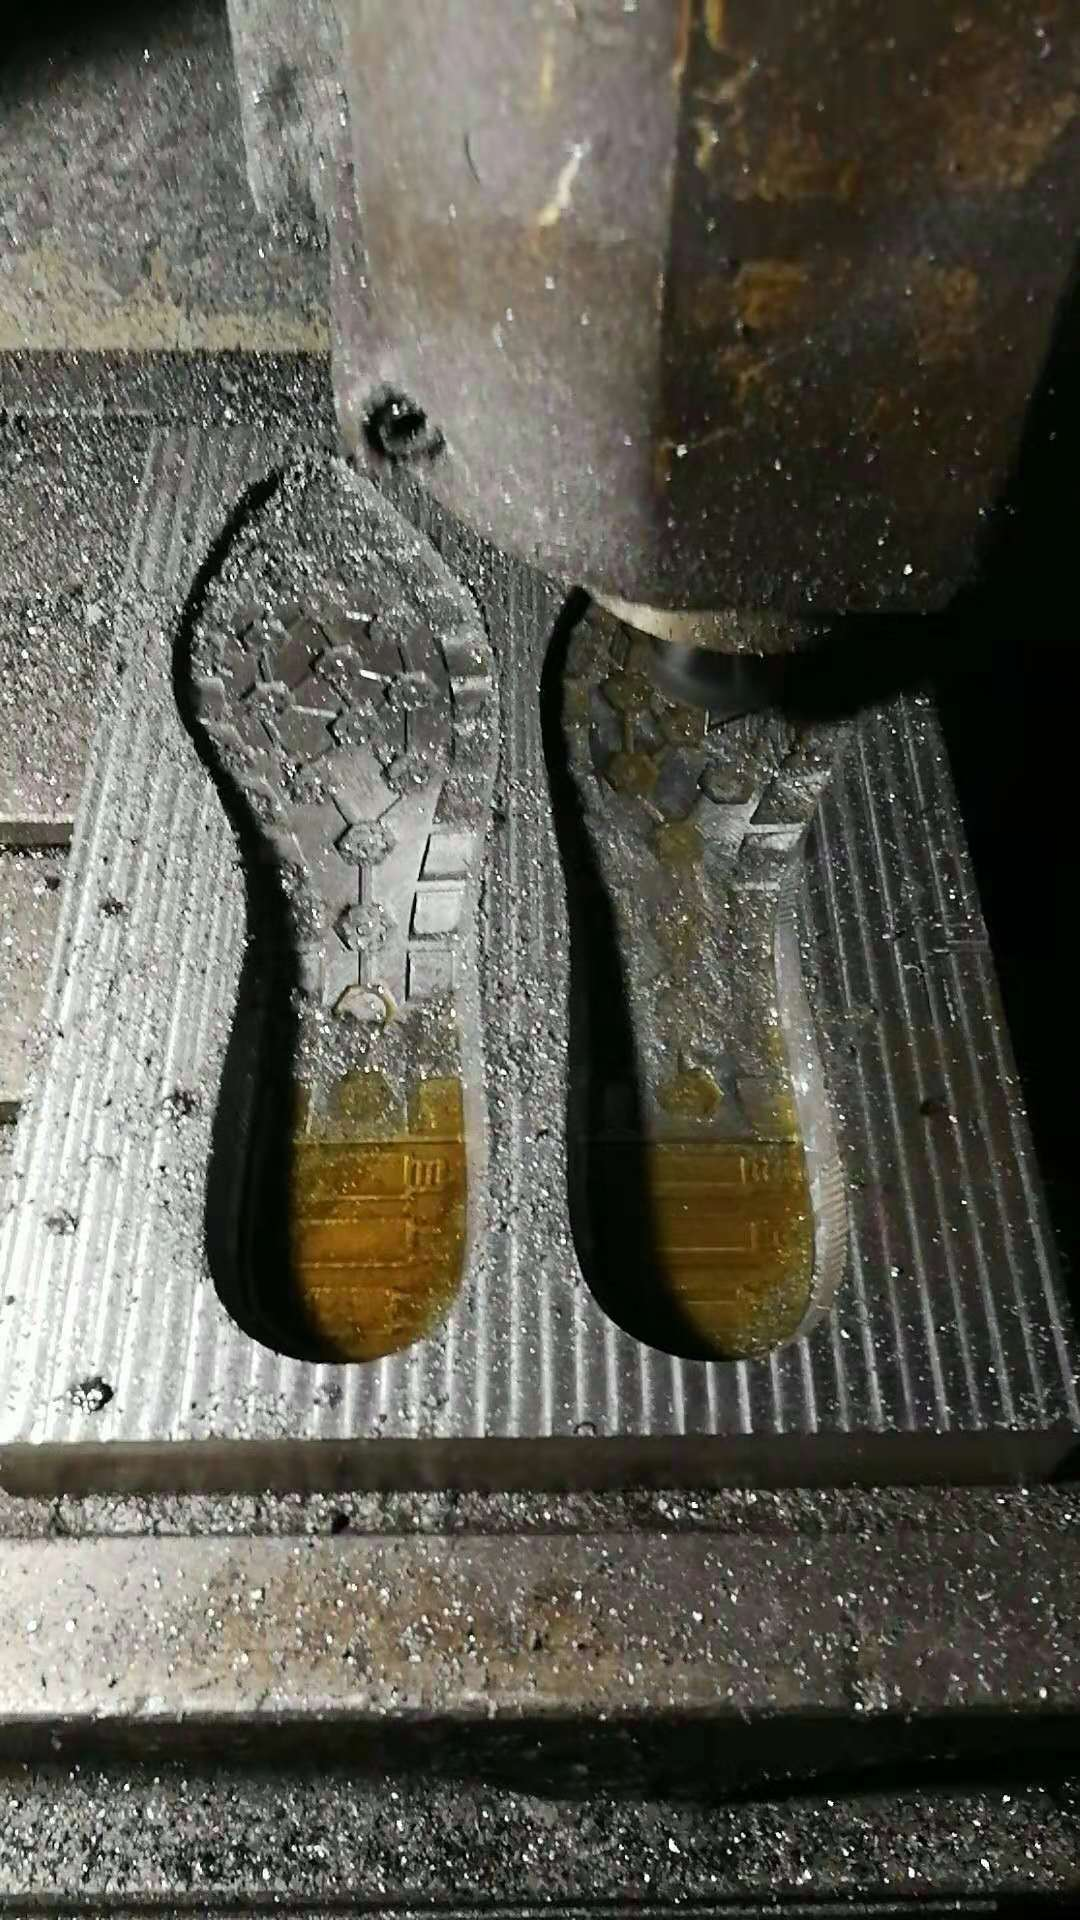 OEM Shoe tooling, investment casting tooling, die casting tooling